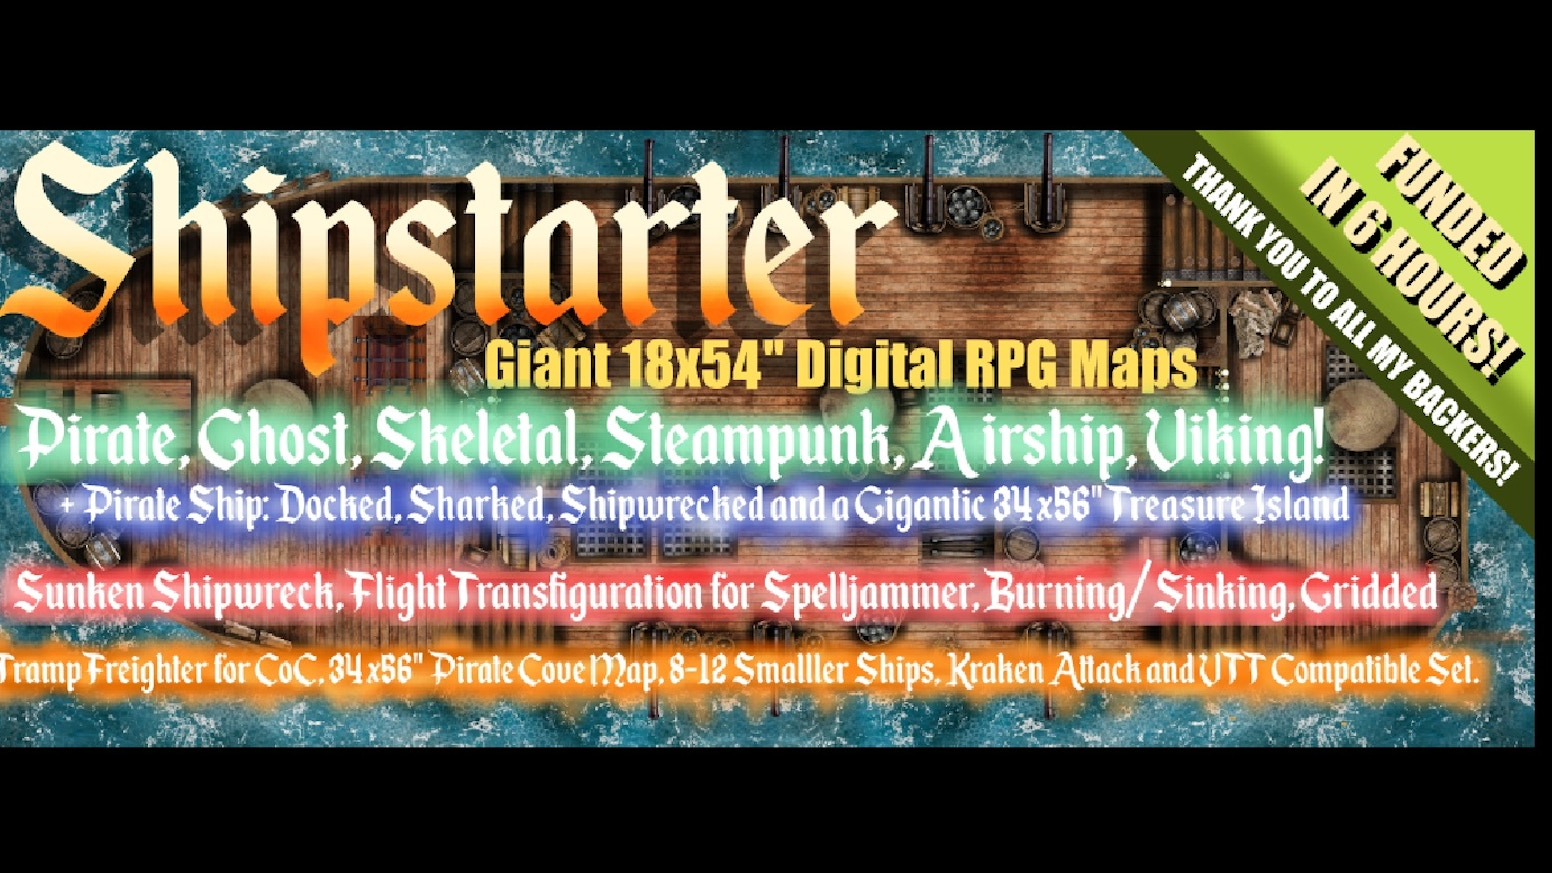 Shipstarter: Giant Fantasy Digital RPG Maps by Kris McDermott